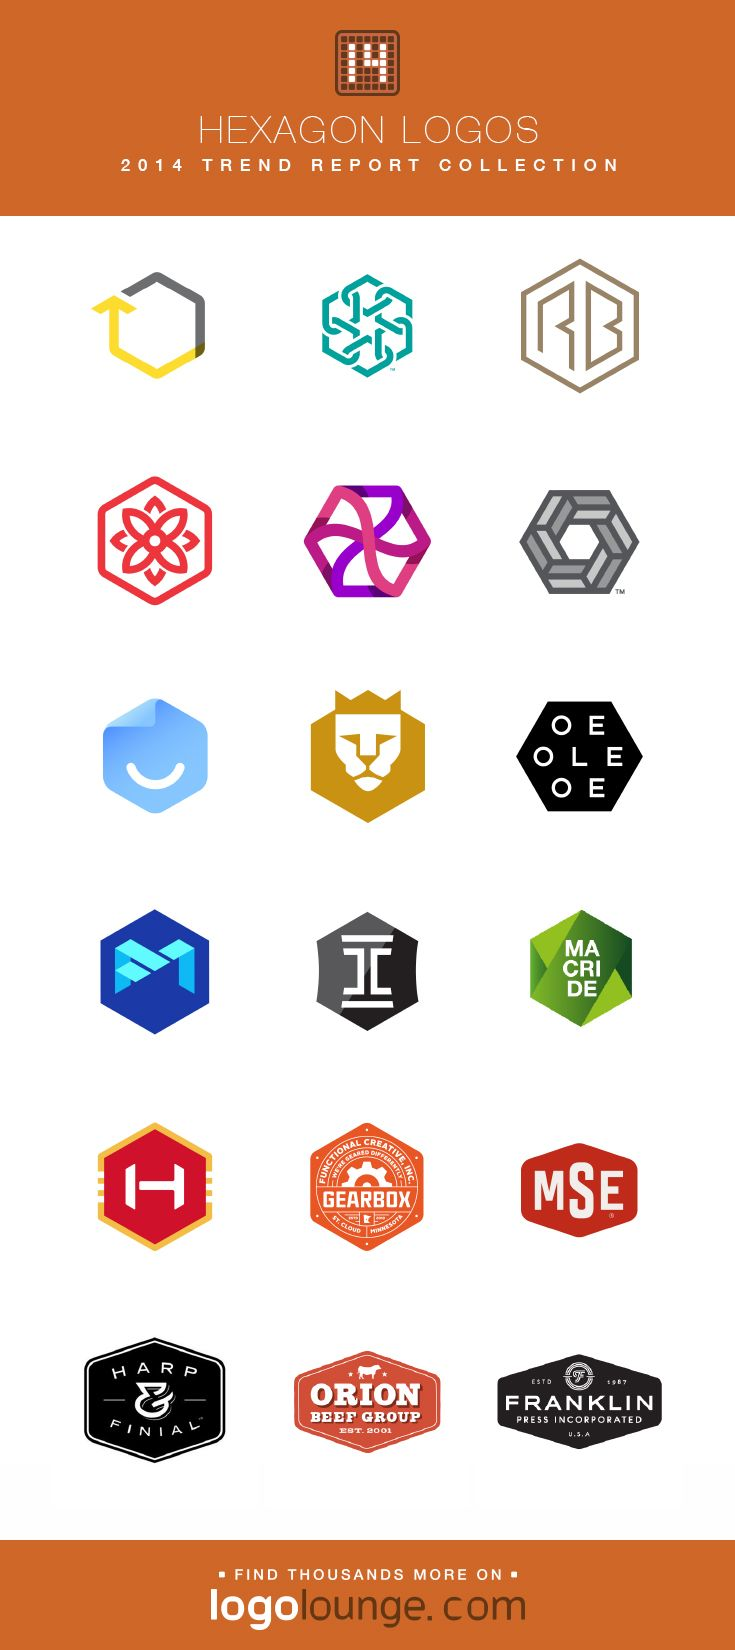 2014 Logolounge Trend Report Collection Hexagon Logos These